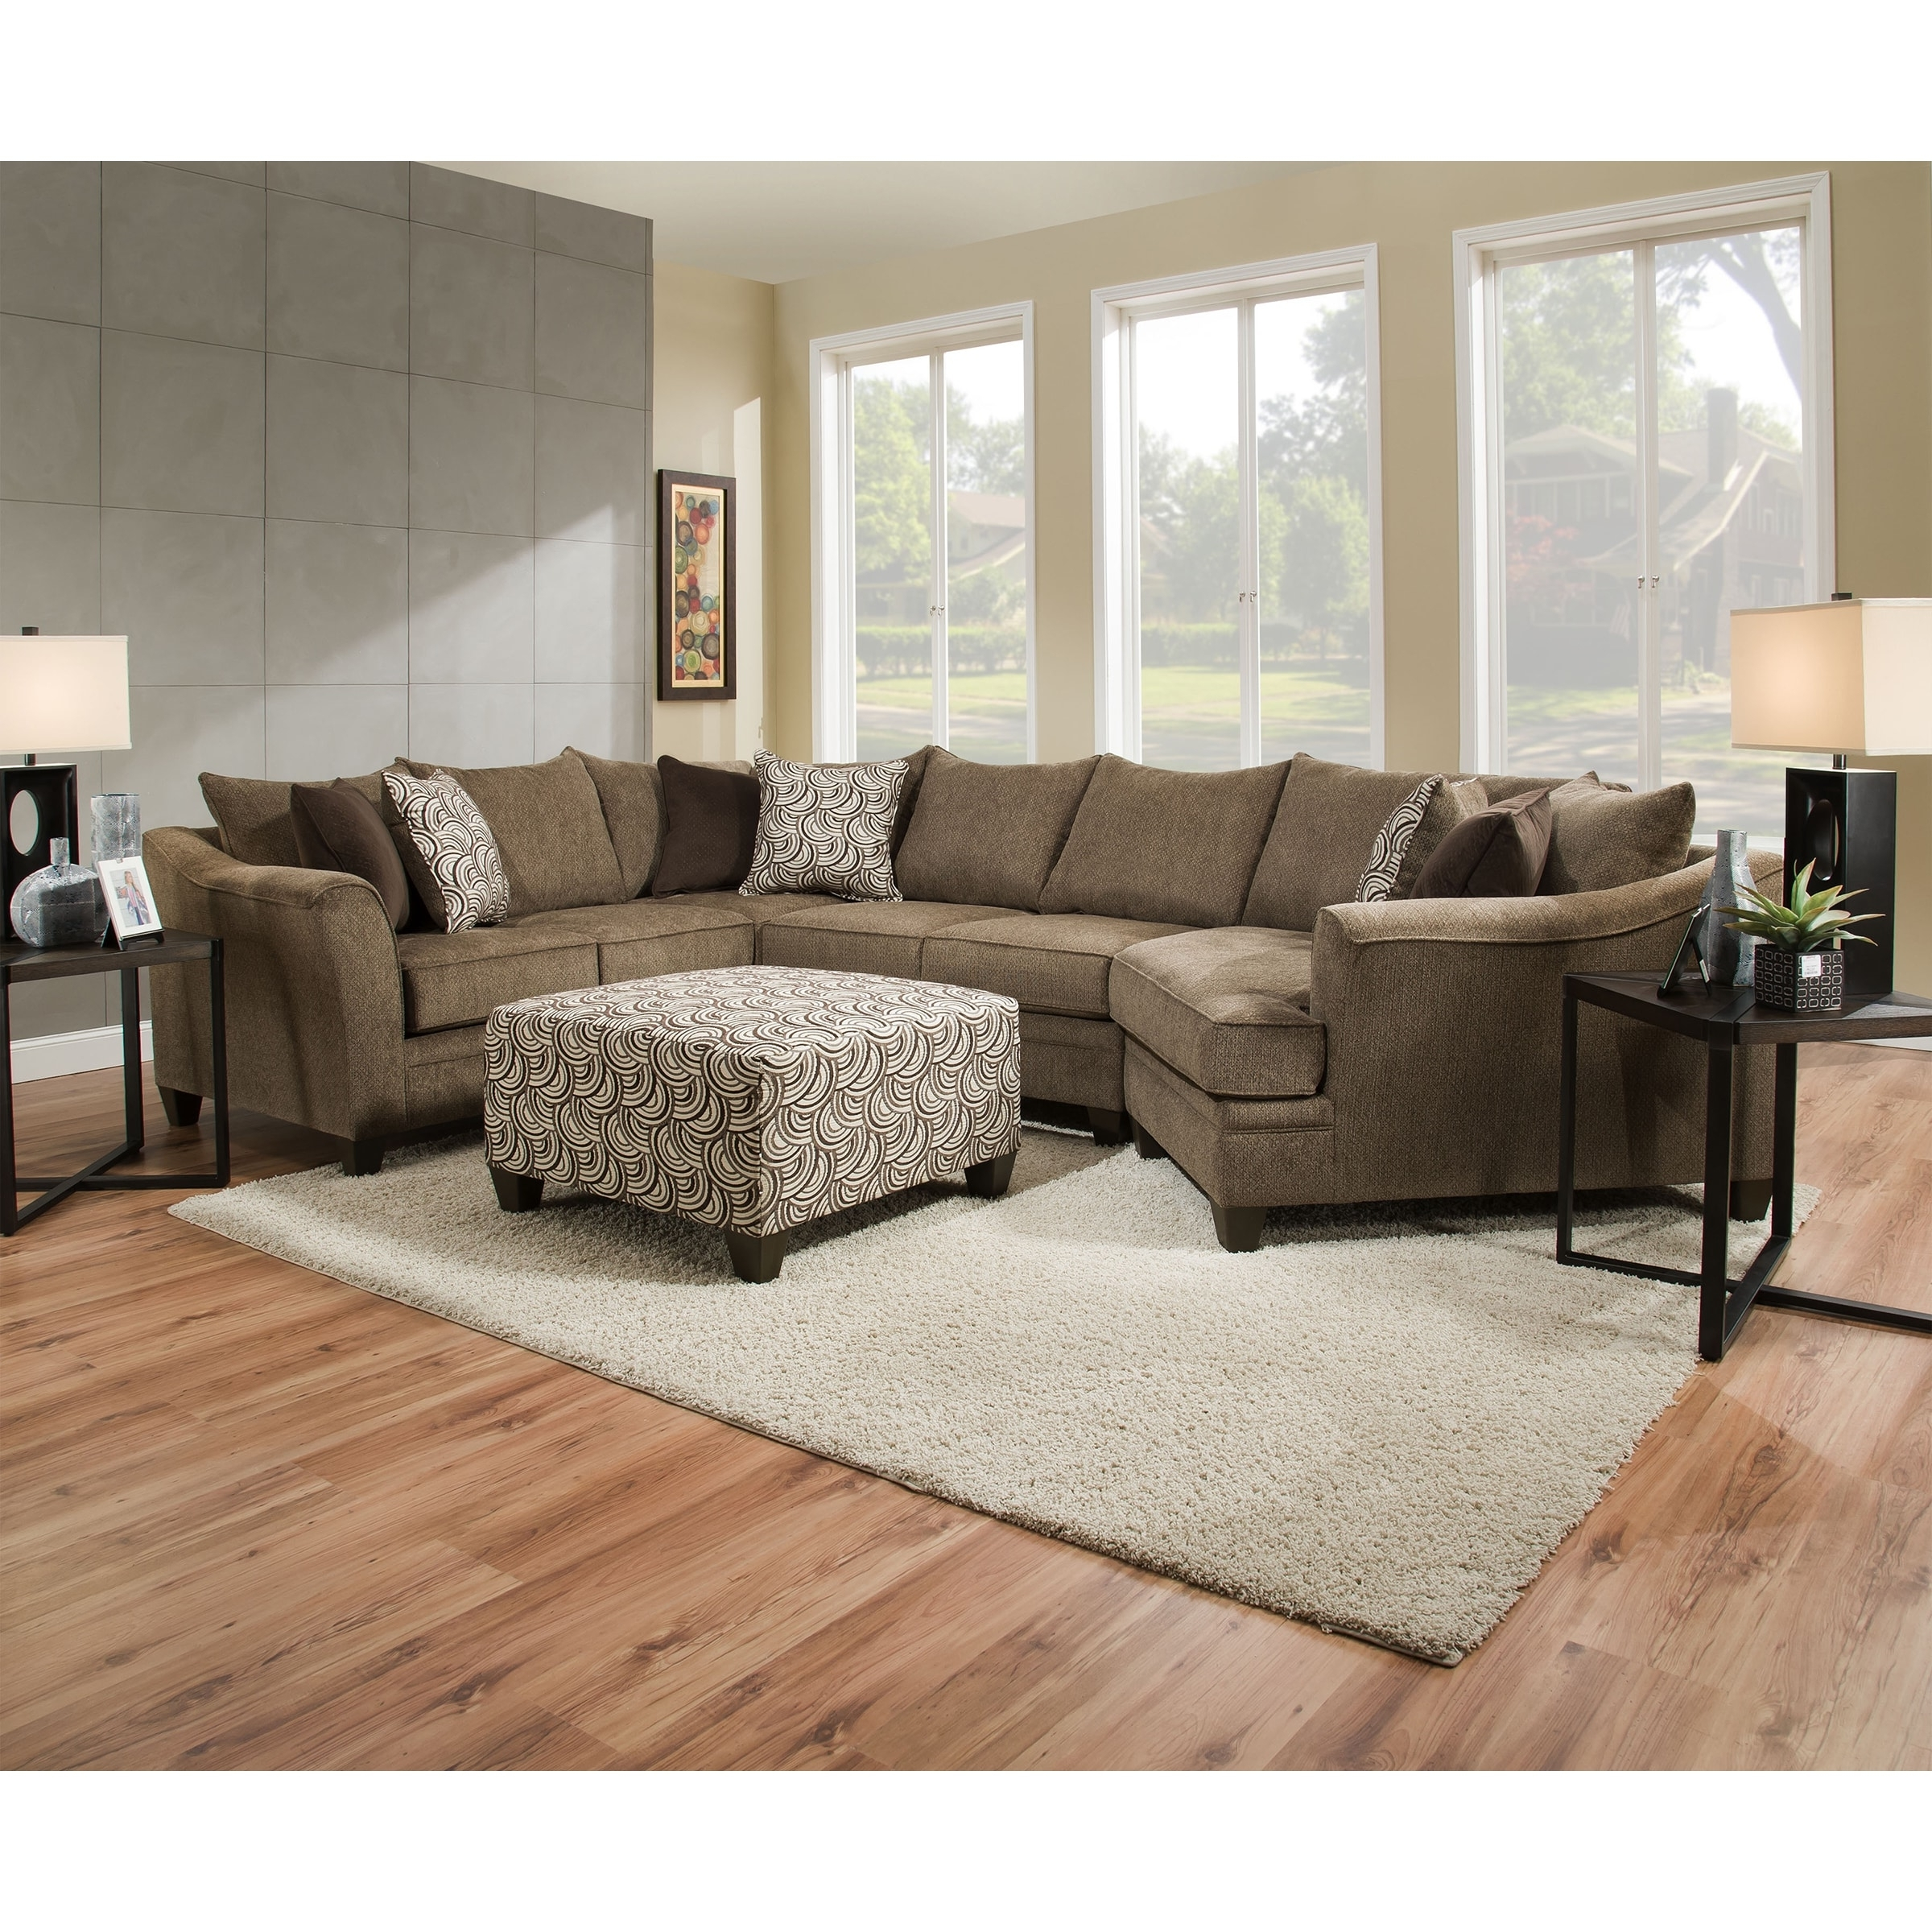 Simmons Upholstery Albany Truffle Sectional – Free Shipping Today In Most Recently Released Simmons Sectional Sofas (View 16 of 20)